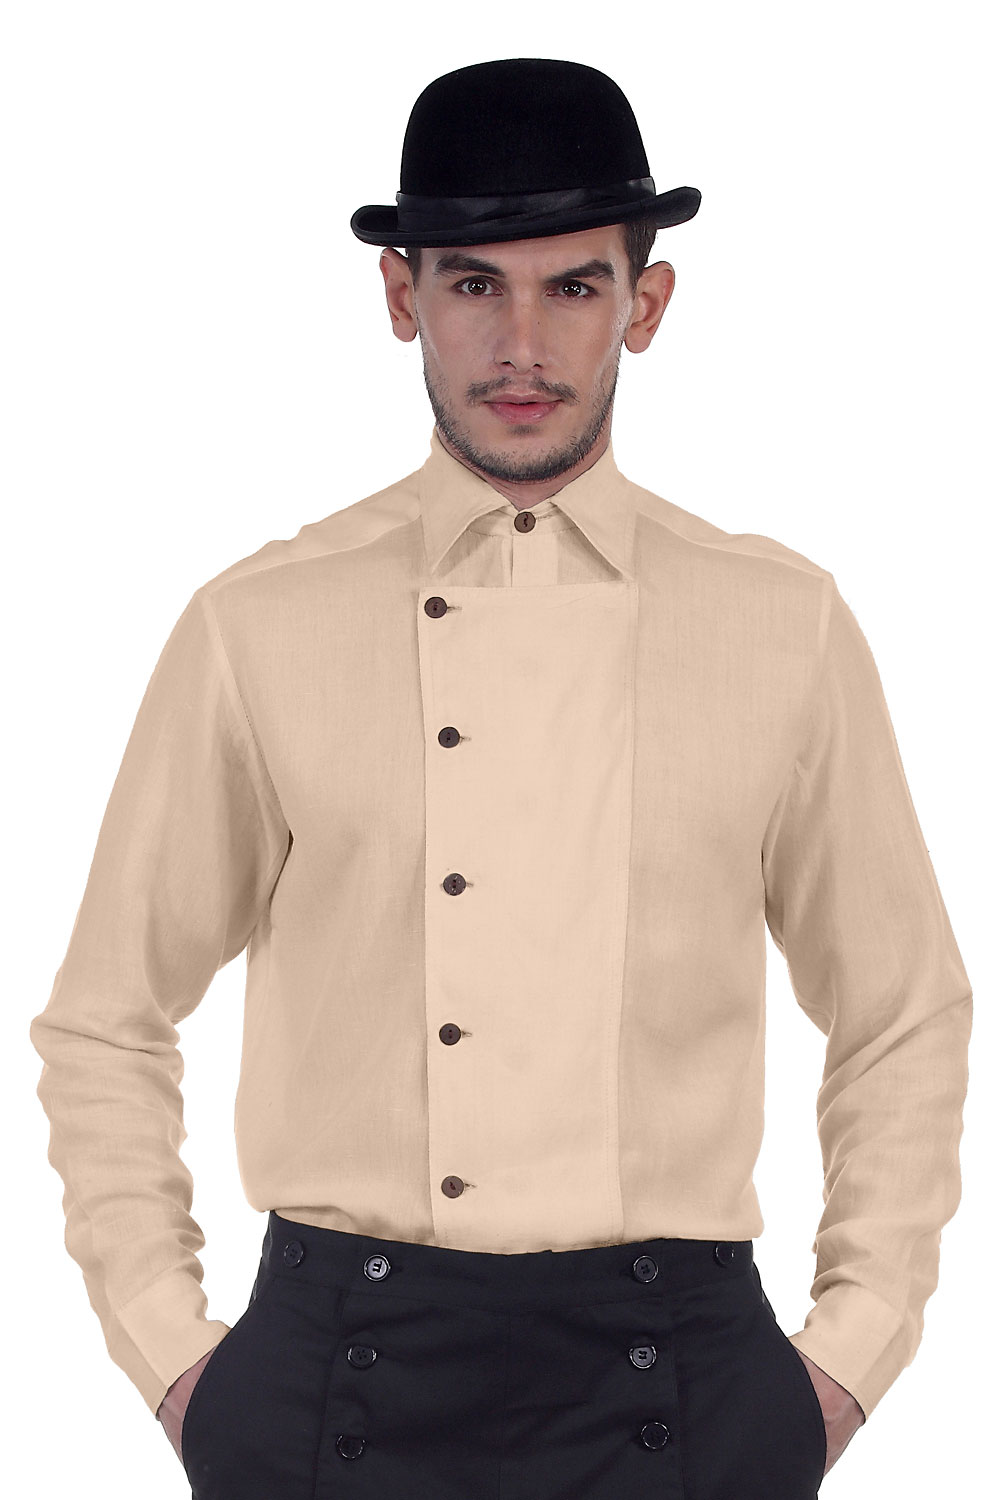 Linen Vintage Side-Button Shirt - 10 Color options (Color: (AL-BK-CH-GO-GR-OW-NV-OR-PK-RD): Almond)